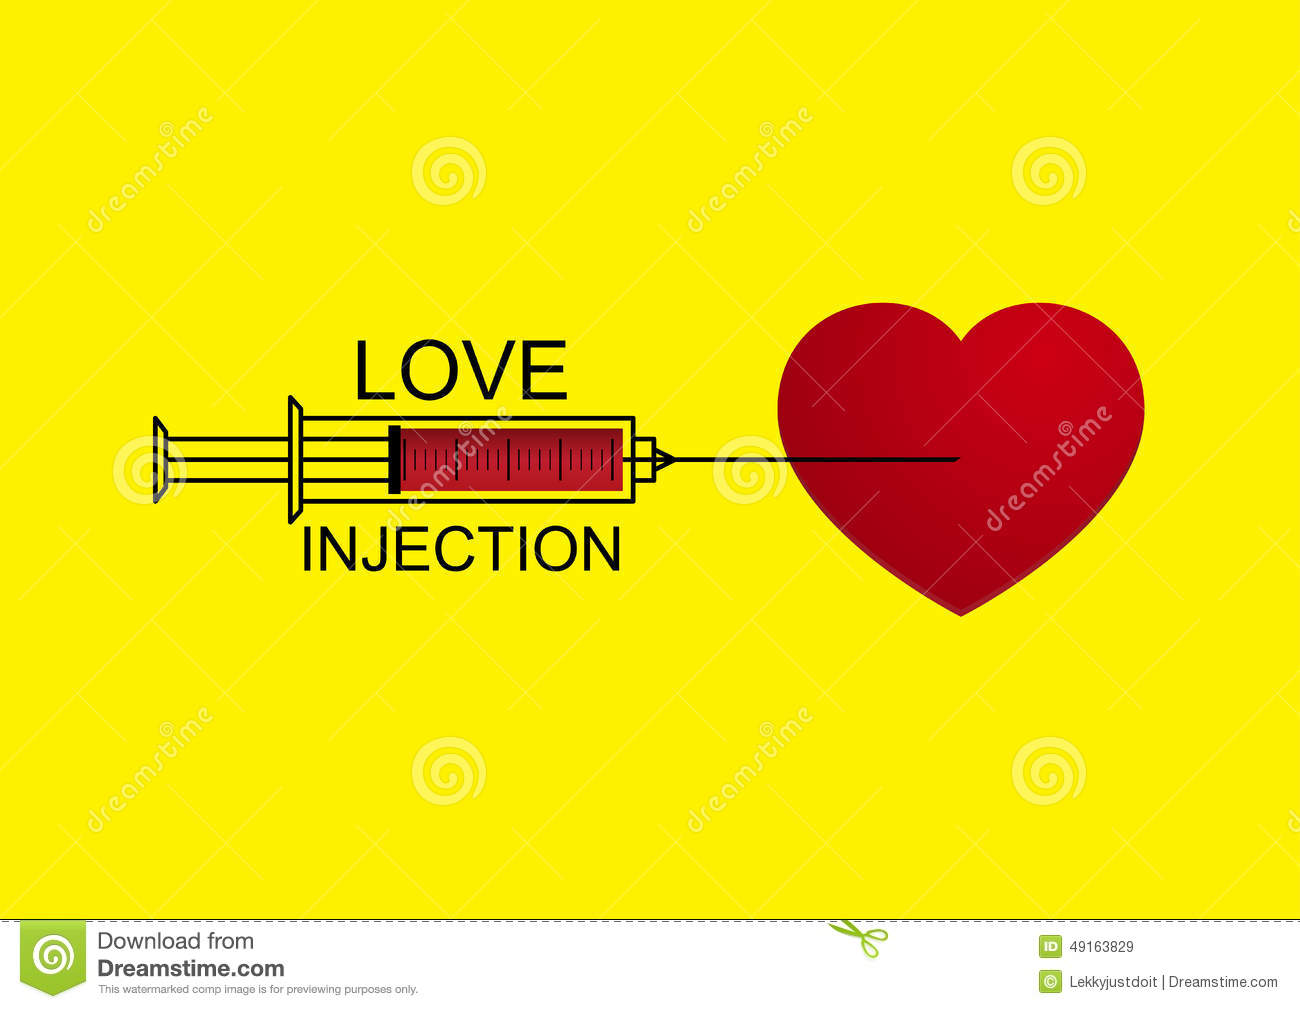 Injection mentale.